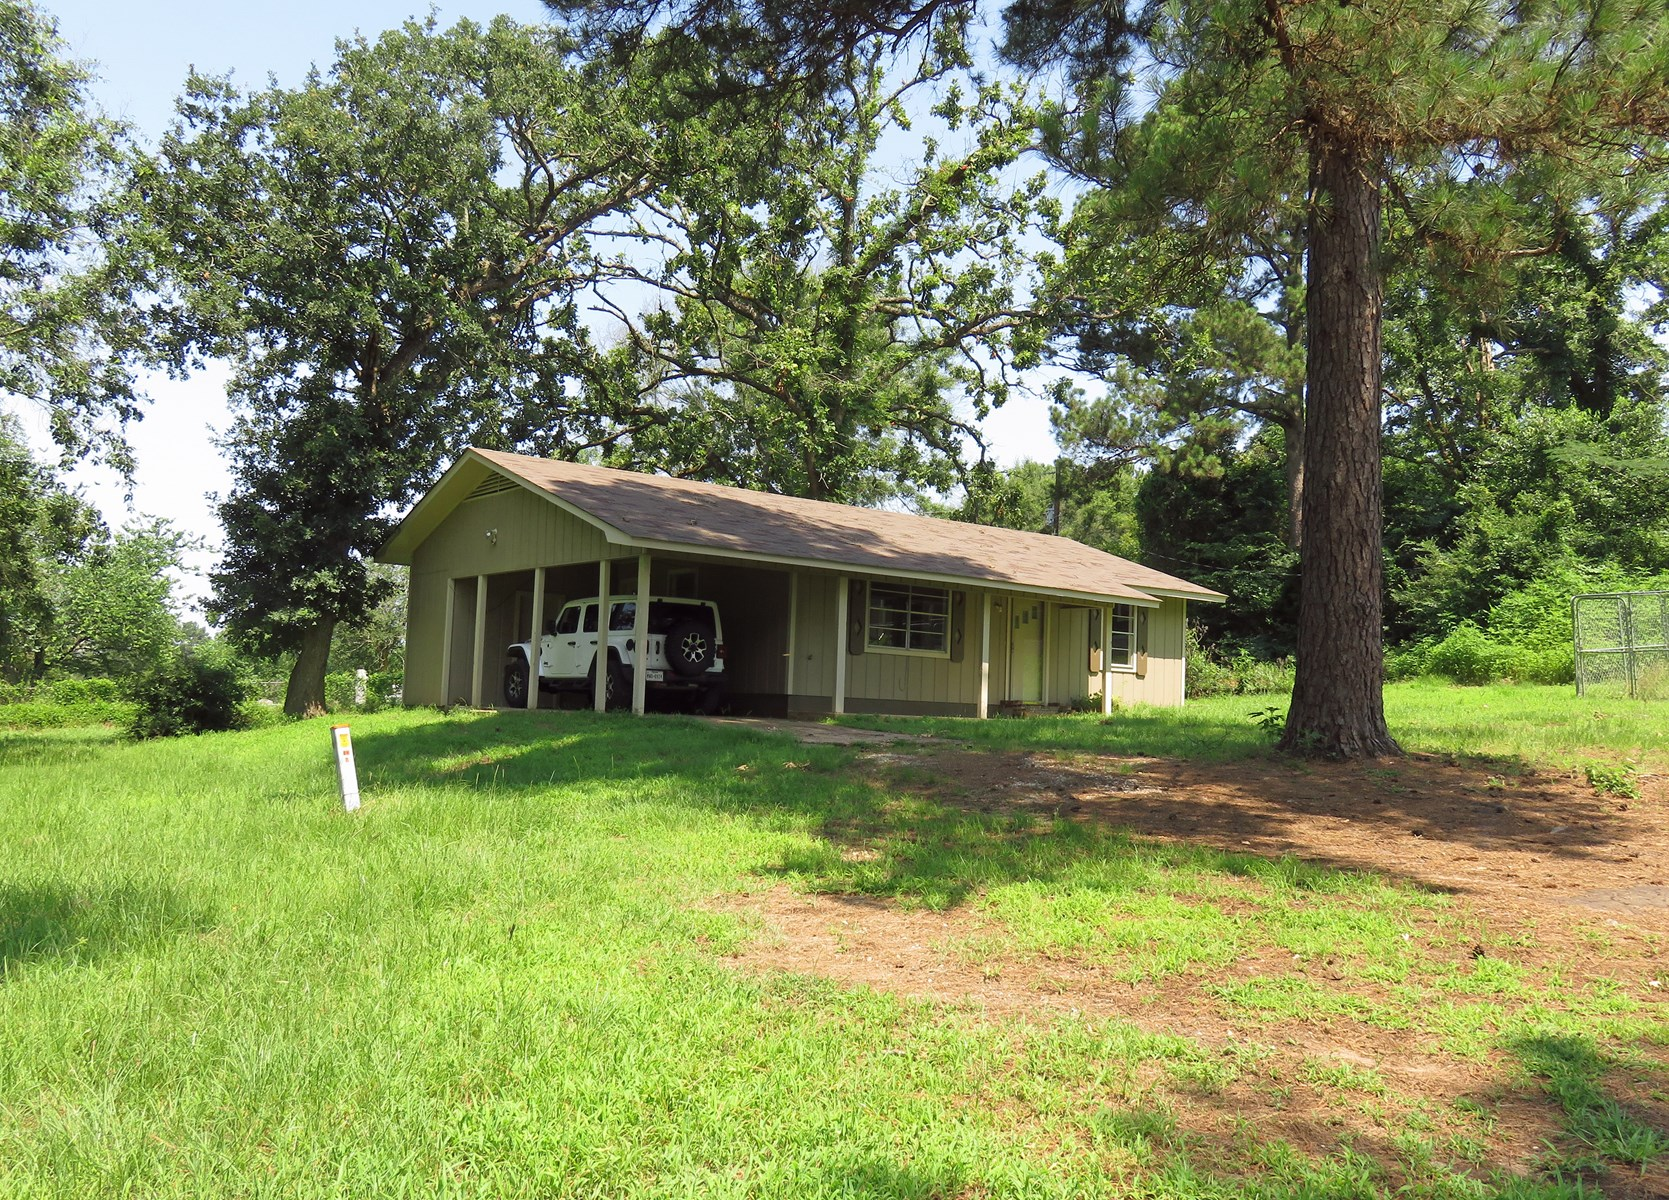 2/1 Country Home For Sale in Anderson County